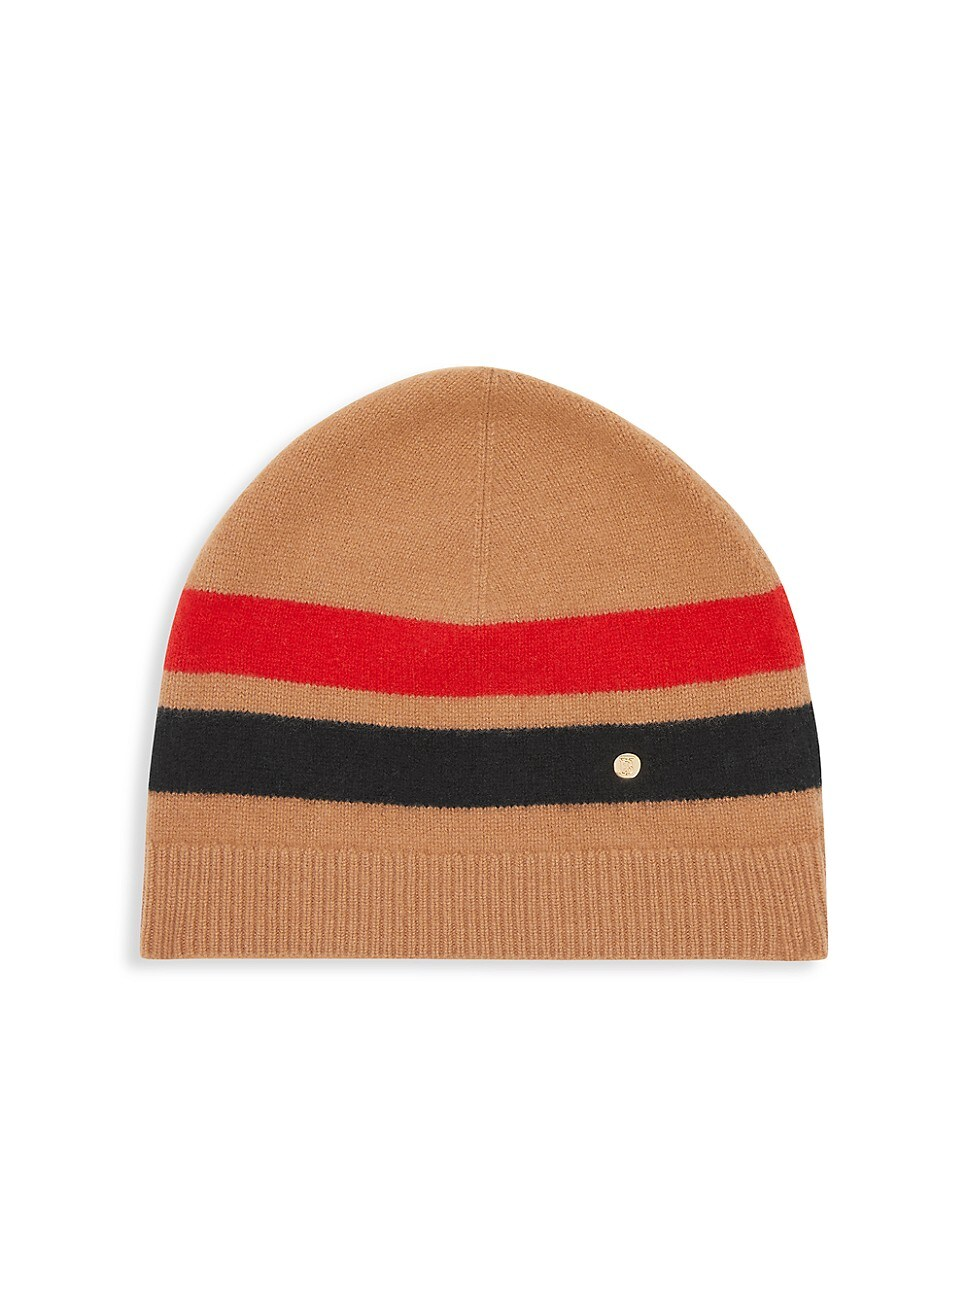 Burberry Beanies WOMEN'S GRAPHIC STRIPE WOOL & CASHMERE BEANIE